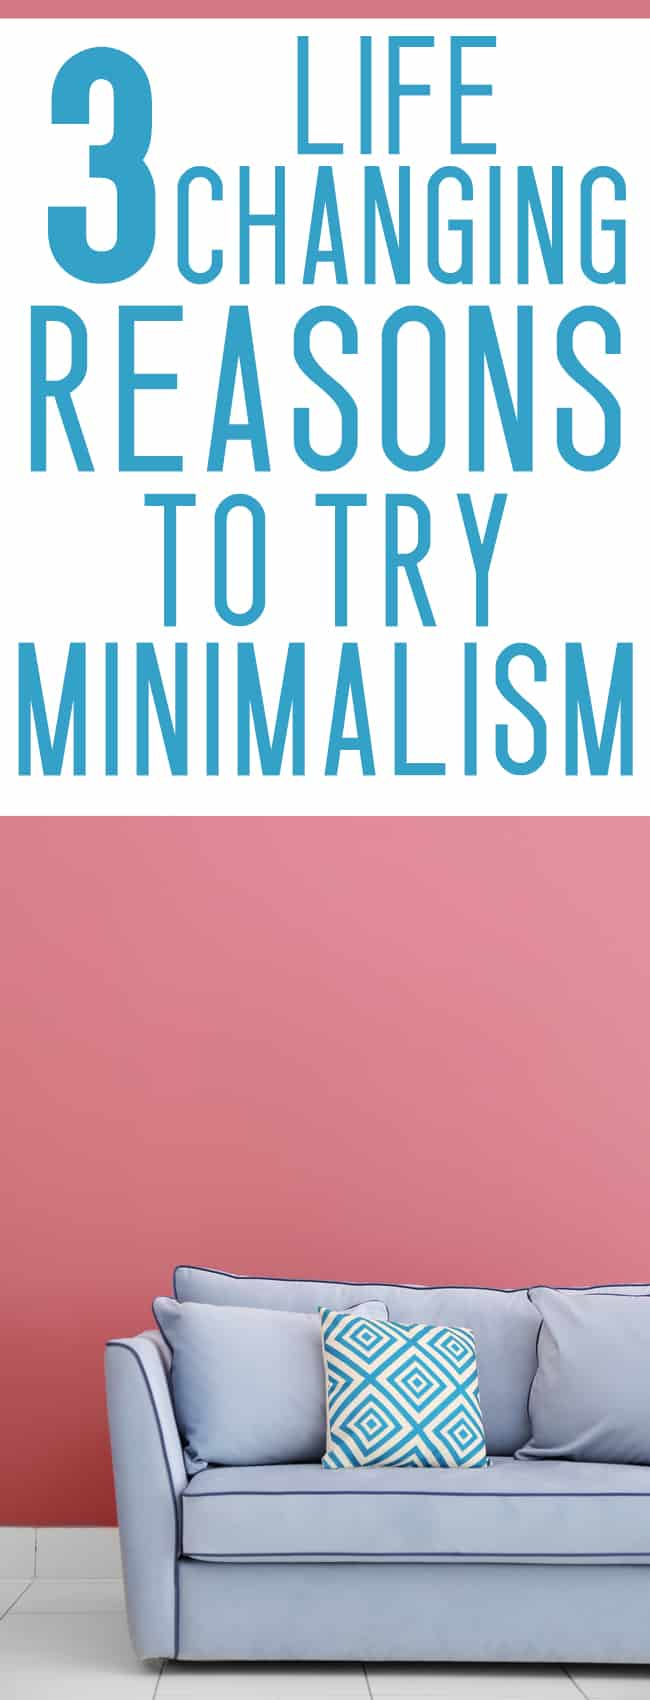 CONSIDERING MINIMALISM? a minimalist lifestyle has some AWESOME benefits